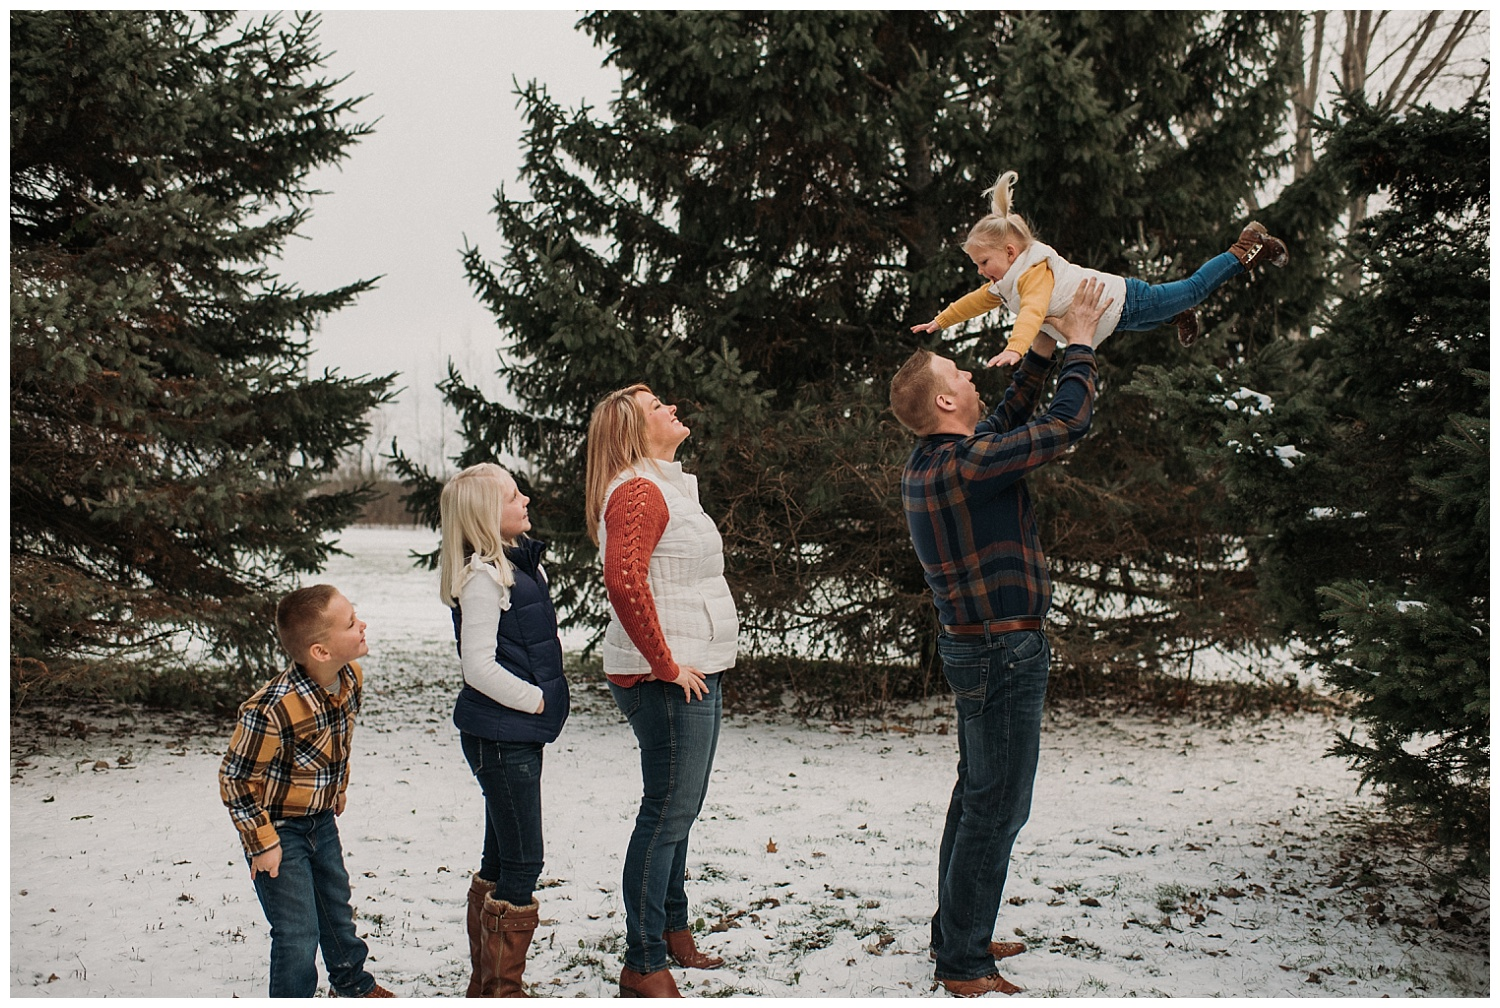 Pewaukee-family-photographer-2019 (4).jpg